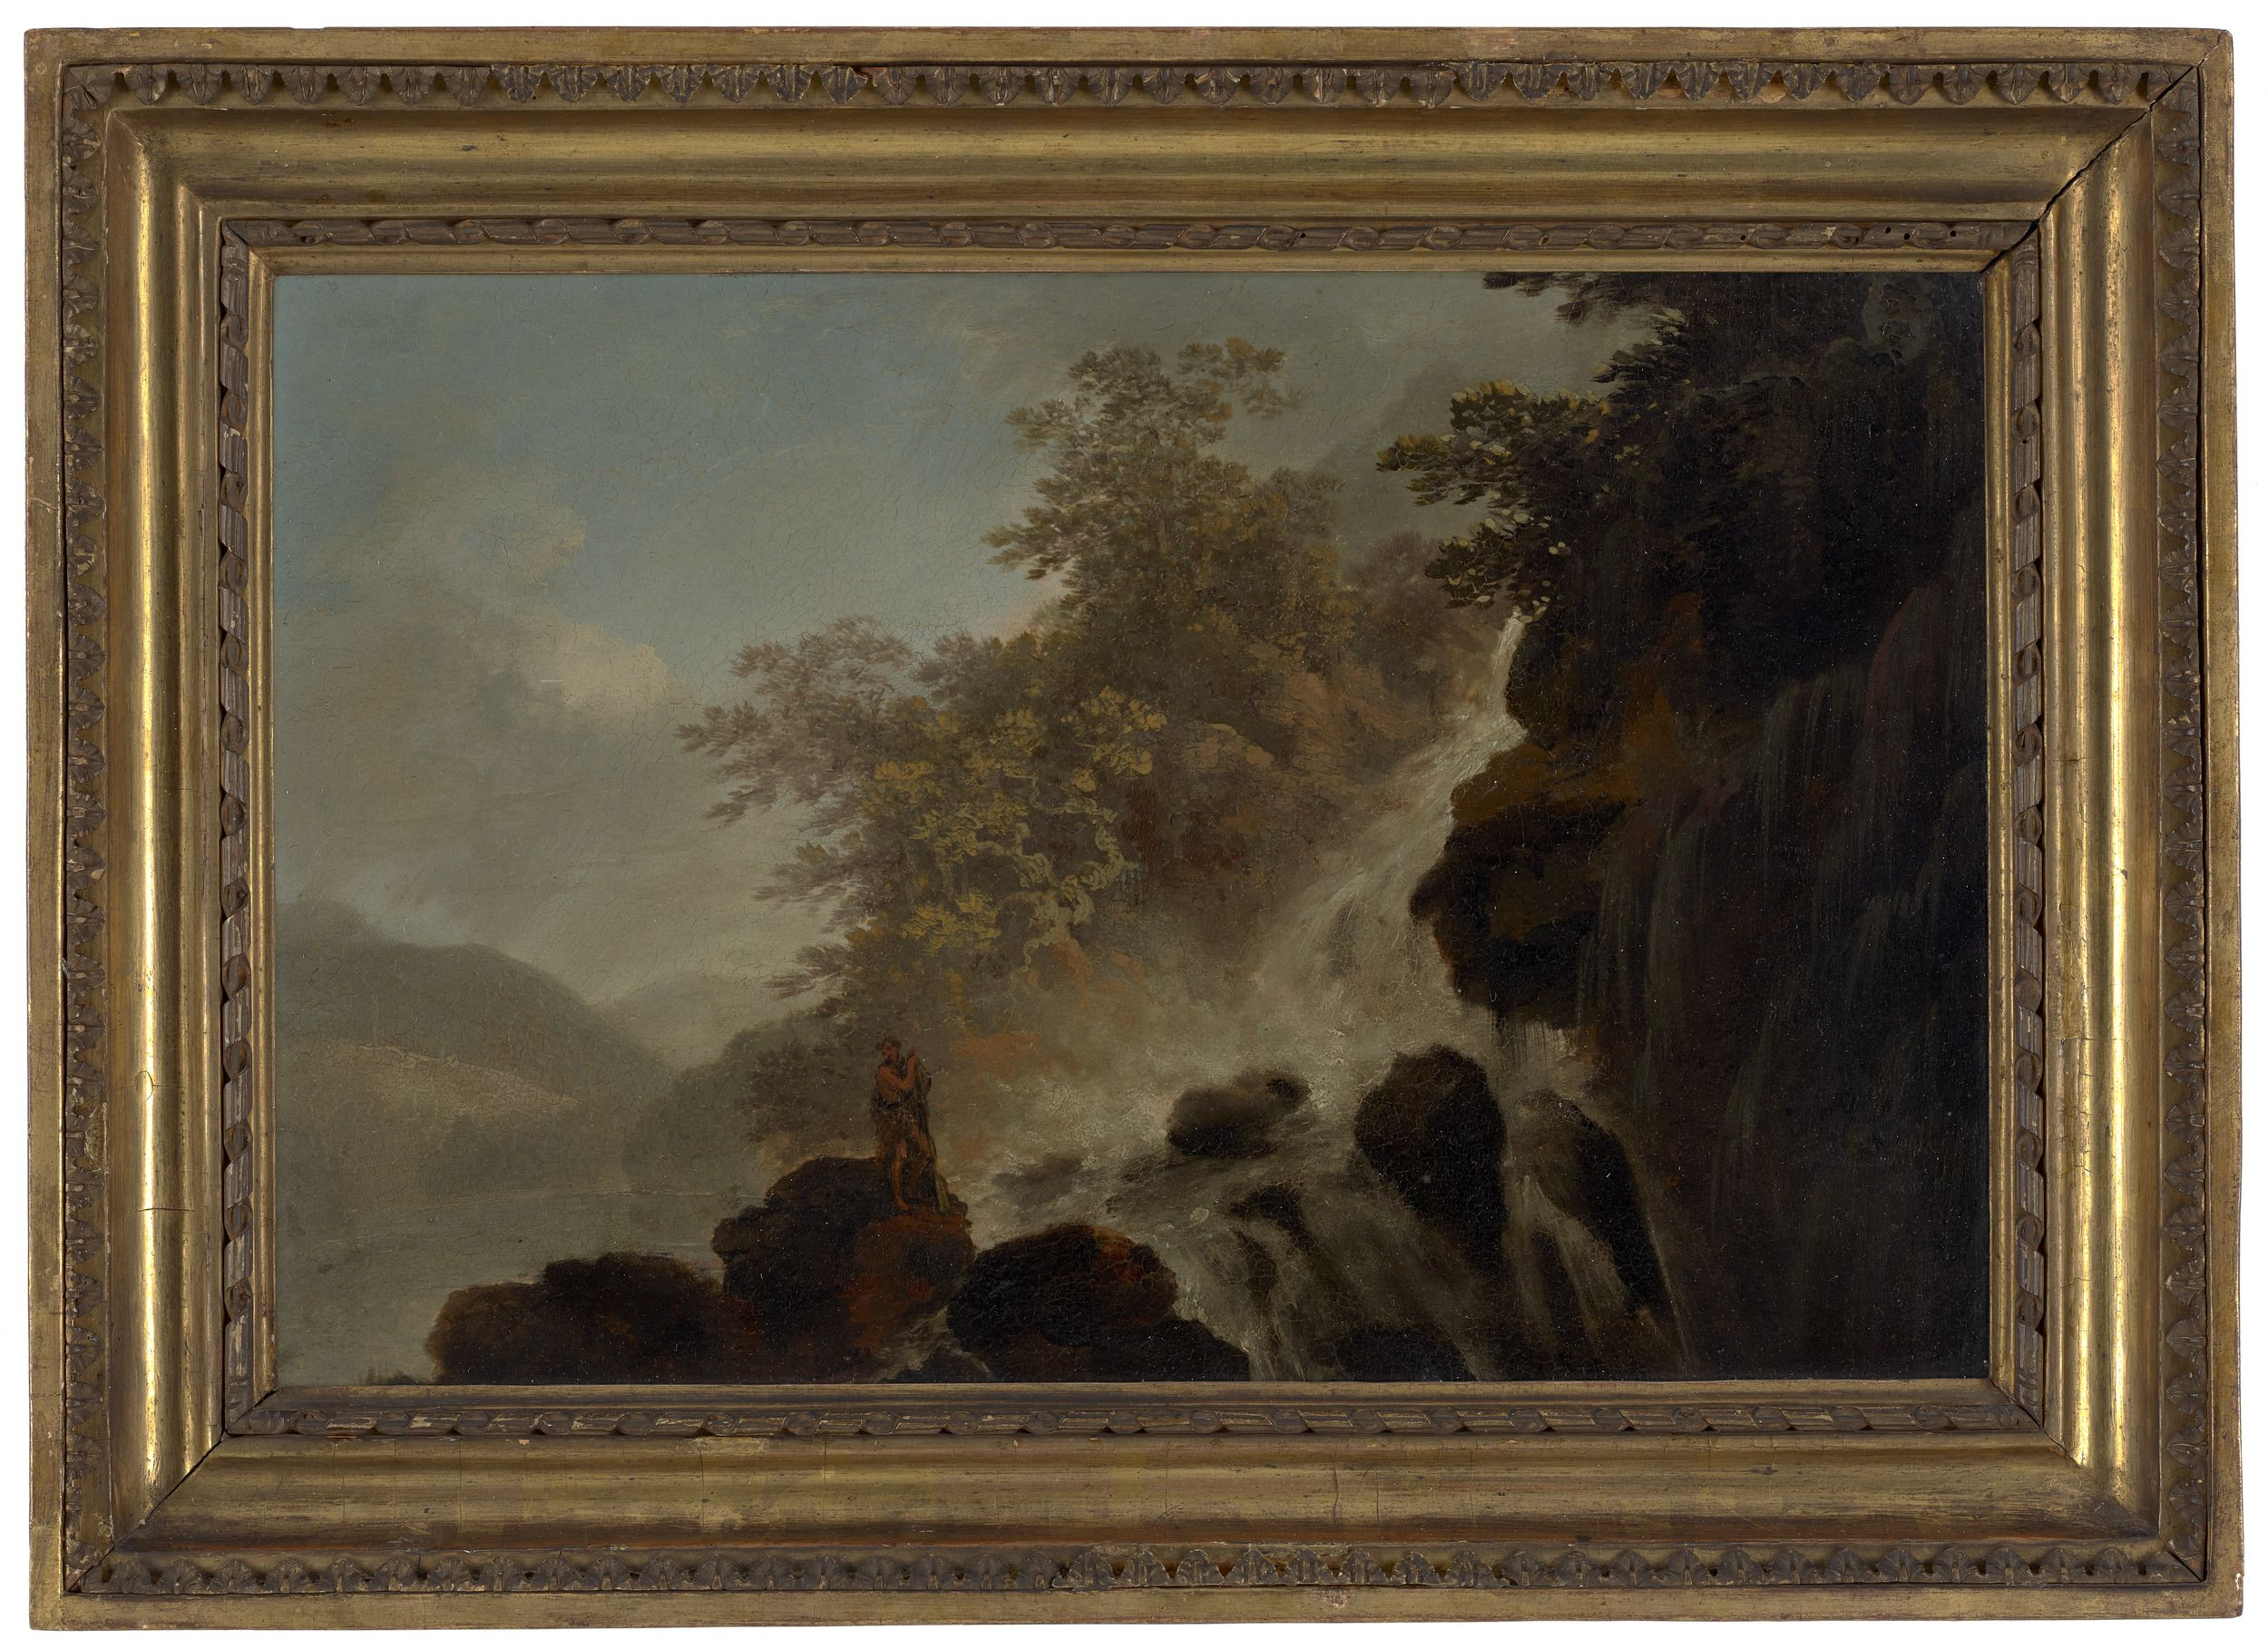 This painting shows a Māori man standing on a rocky outcrop in front of a cascading waterfall